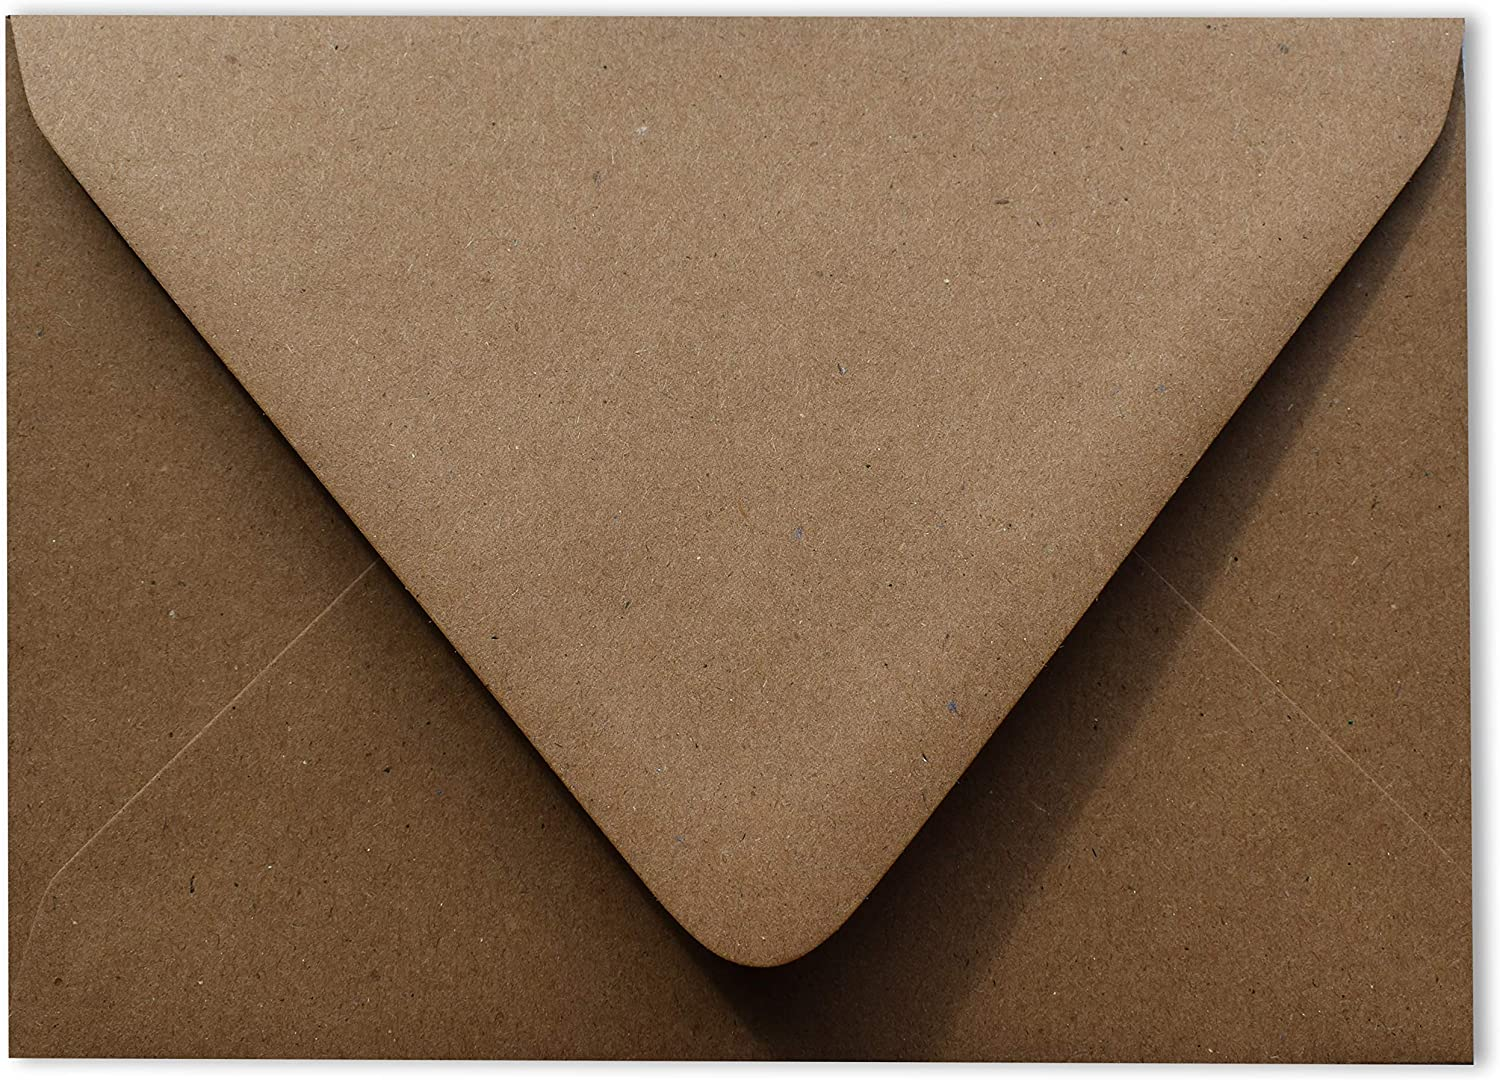 Kraft Grocery Bag 2021 autumn and winter new Brown 50 Boxed Contour -80lb A7 Flap Euro Enve excellence